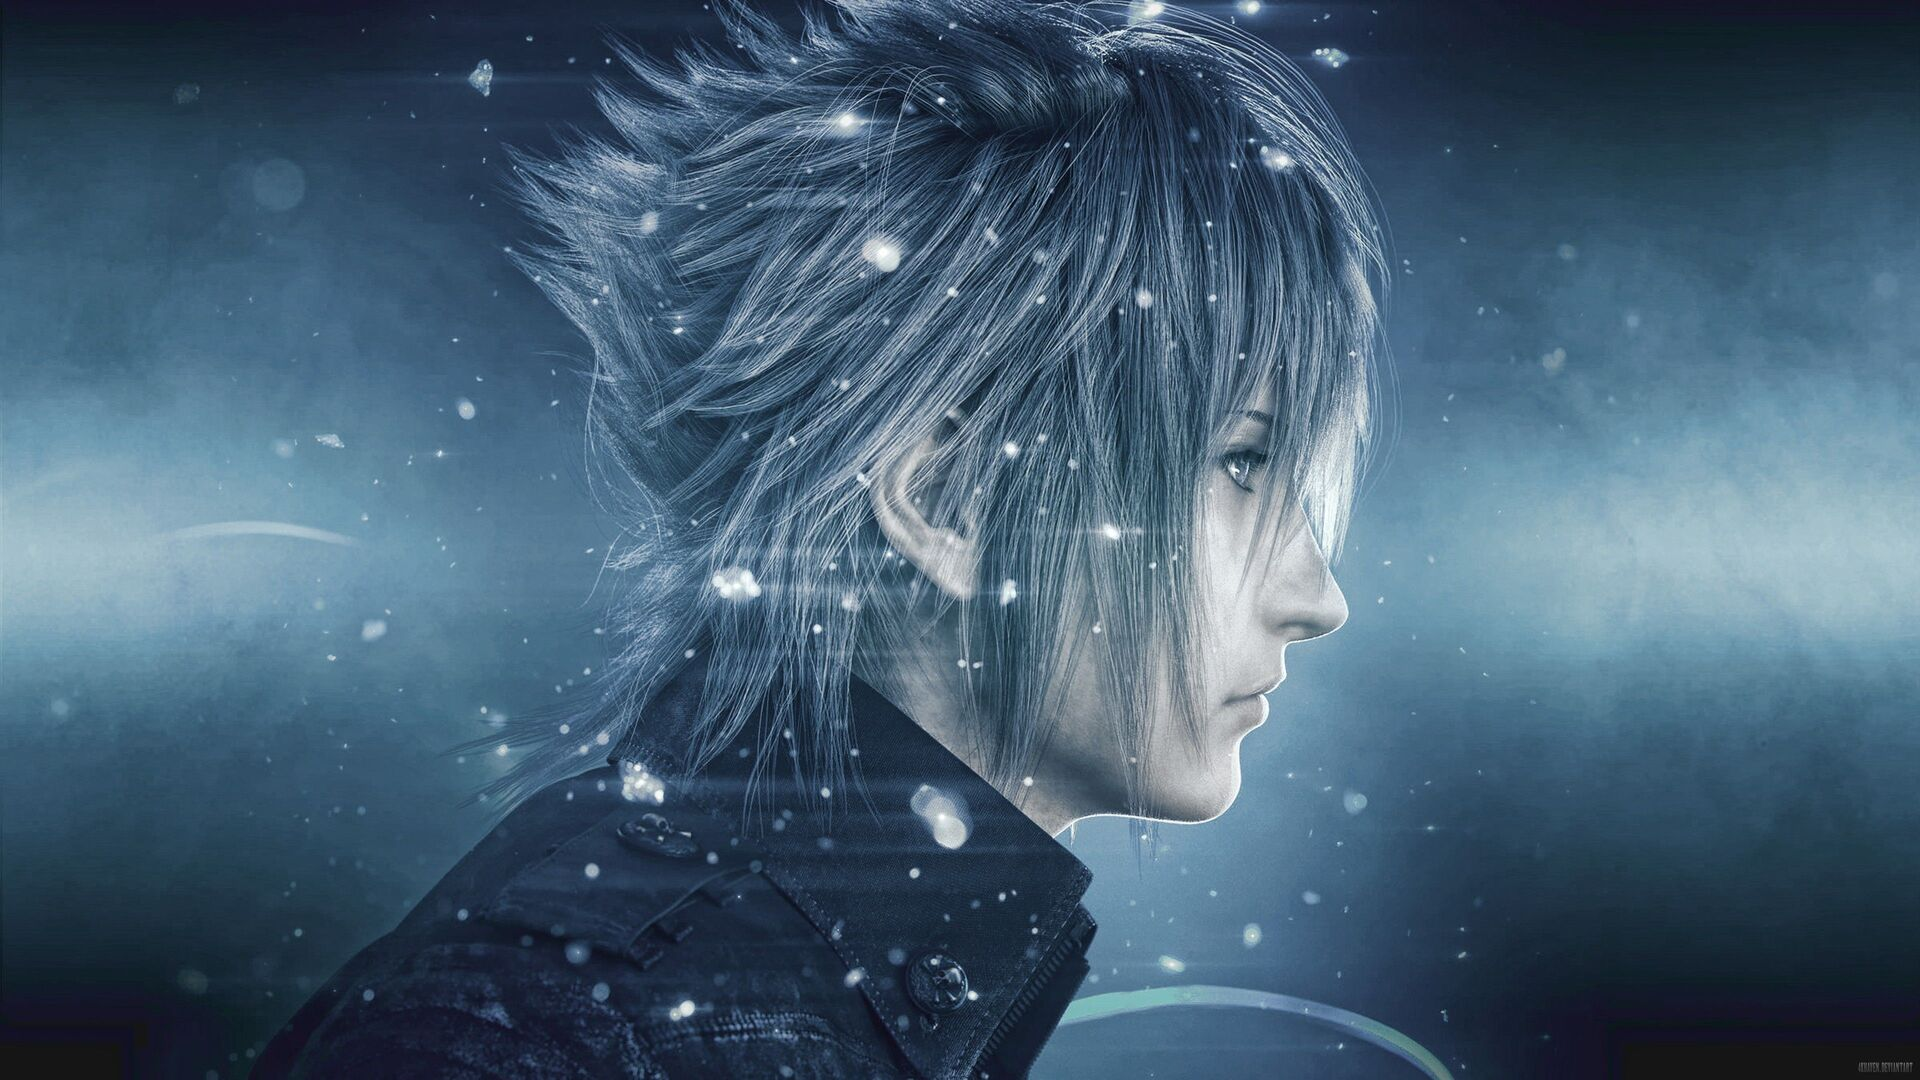 Final Fantasy Xv 4k Hd Games 4k Wallpapers Images: 1920x1080 Final Fantasy XV Noctis Laptop Full HD 1080P HD